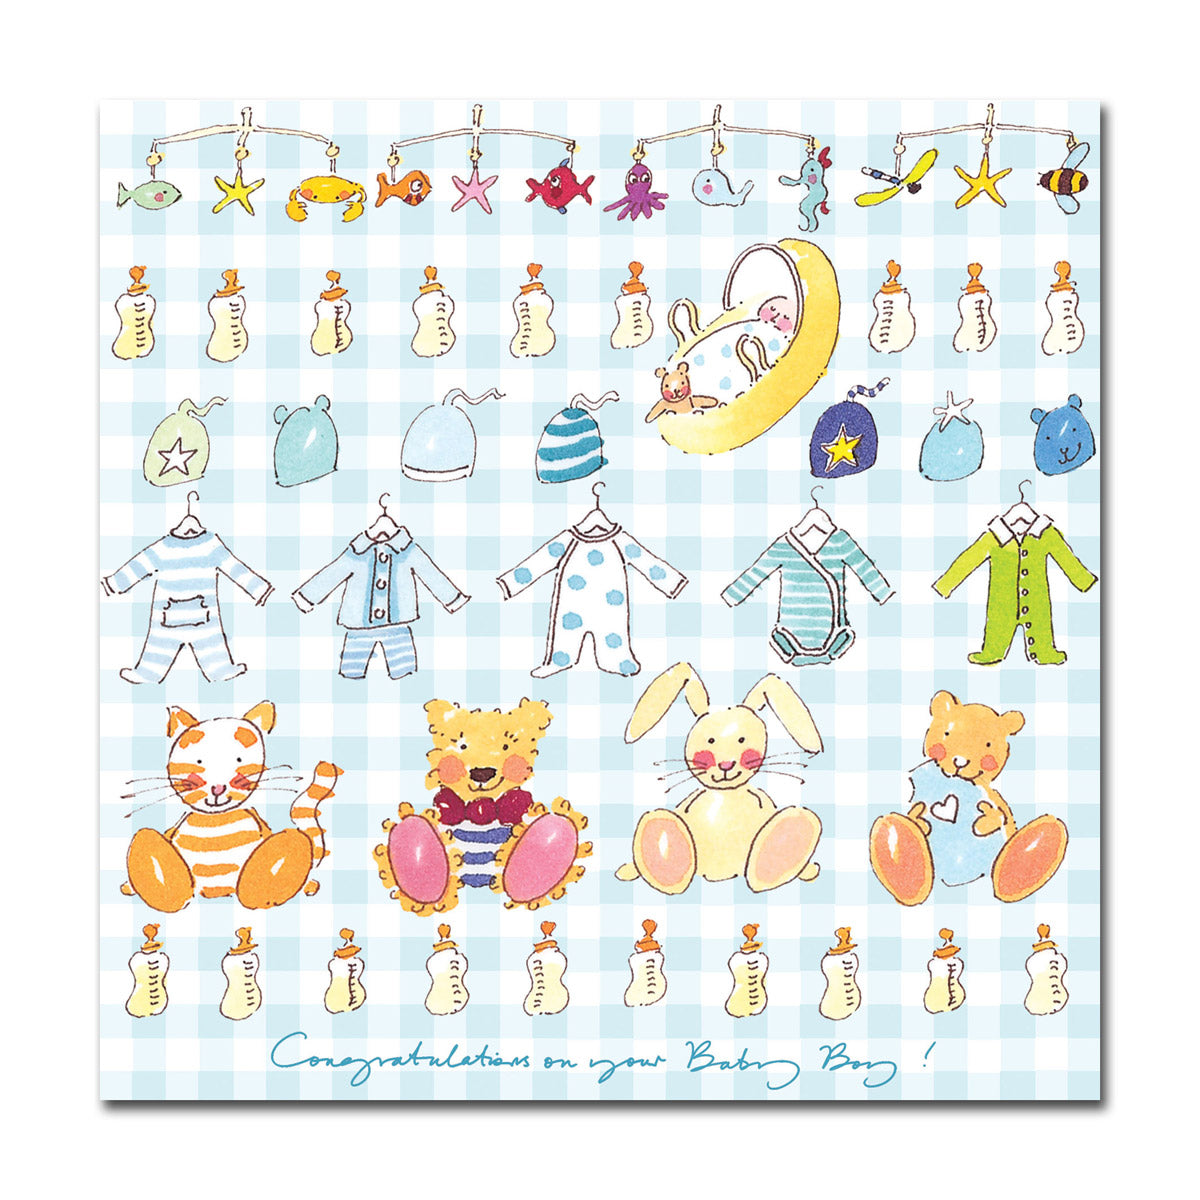 Congratulations Baby Boy! Greeting Card